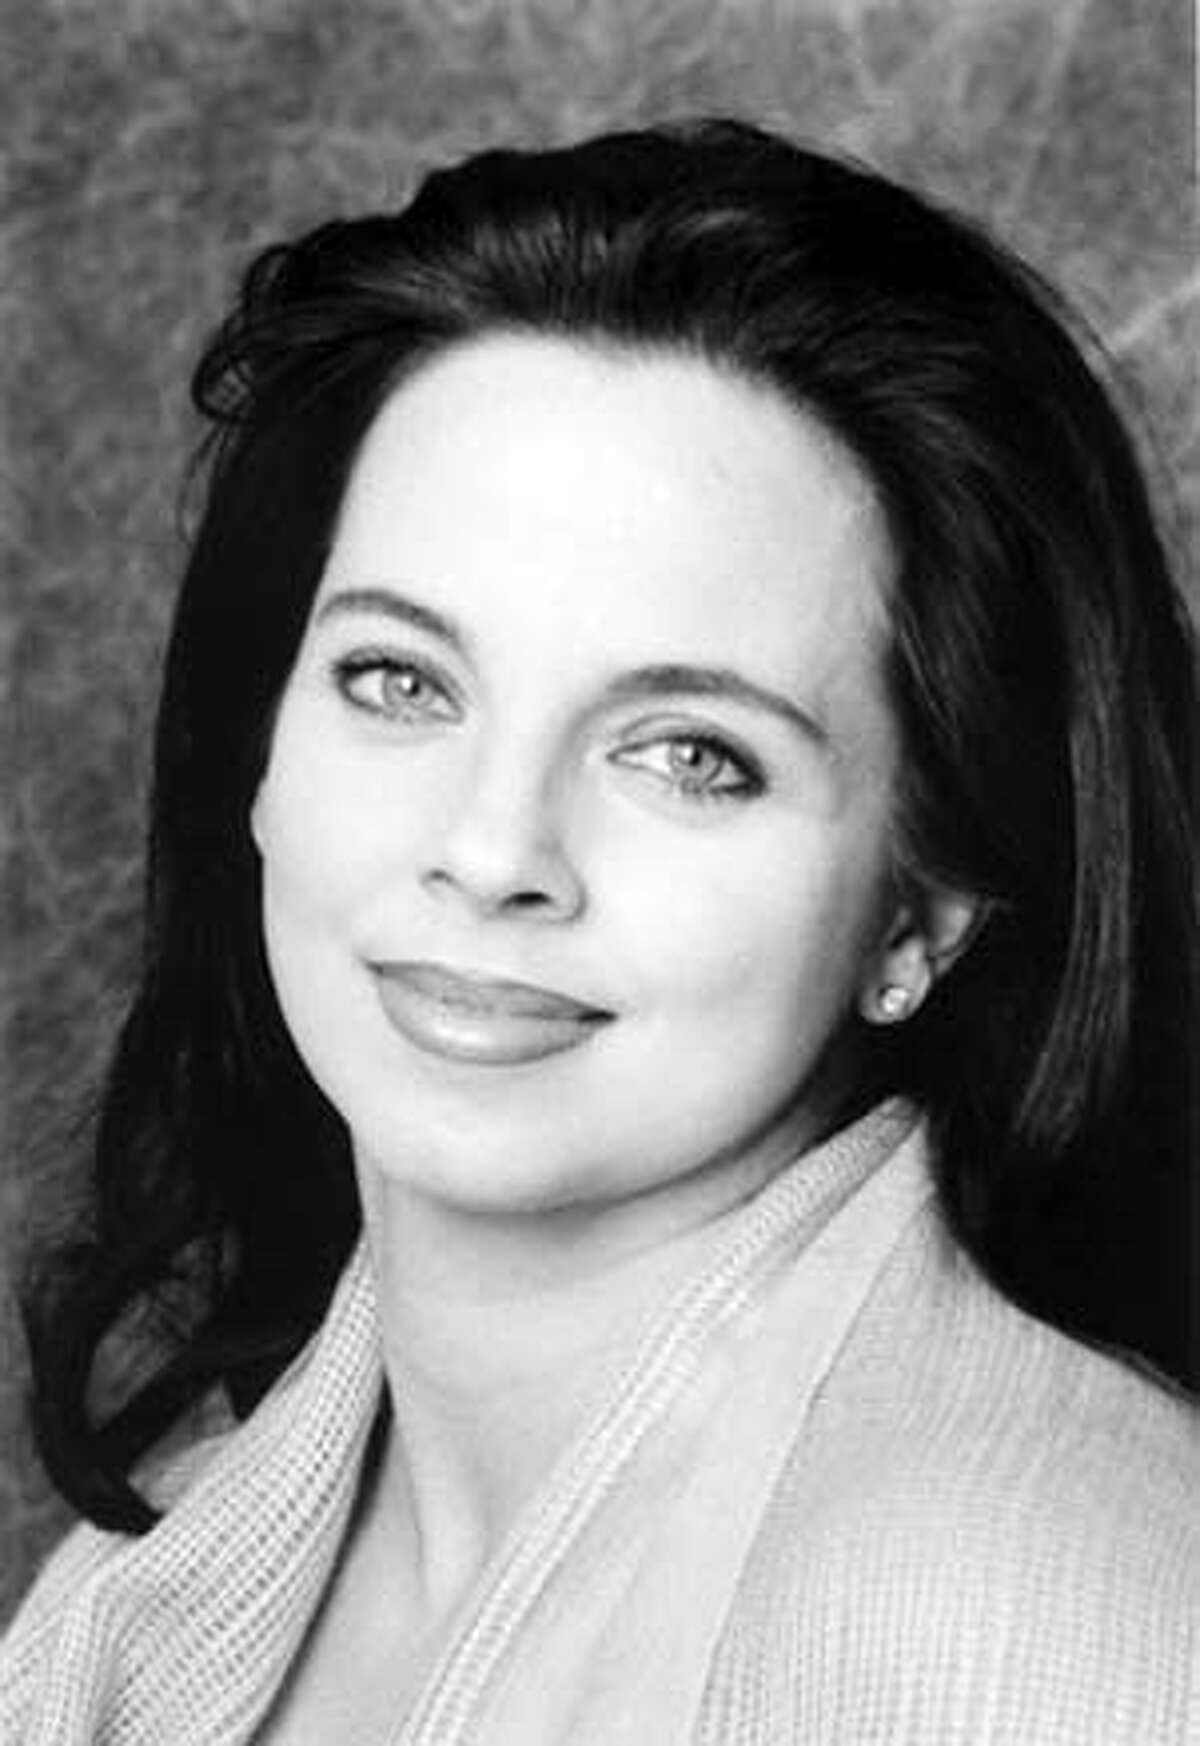 Picture of Michela Alioto-Pier, candidate for District 2 seat on the San Francisco Board of Supervisors. (She is also the incumbent.) Goes with a story slugged WBDISTRICTTWO01. Ran on: 10-01-2004 Alioto-Pier Ran on: 11-03-2004 Richmond Supervisor Jake McGoldrick thanks supporters doing last-minute campaigning on Geary Boulevard at Arguello Boulevard. Ran on: 11-03-2004 Richmond District Supervisor Jake McGoldrick thanks supporters doing last-minute campaigning on Geary Boulevard at Arguello.